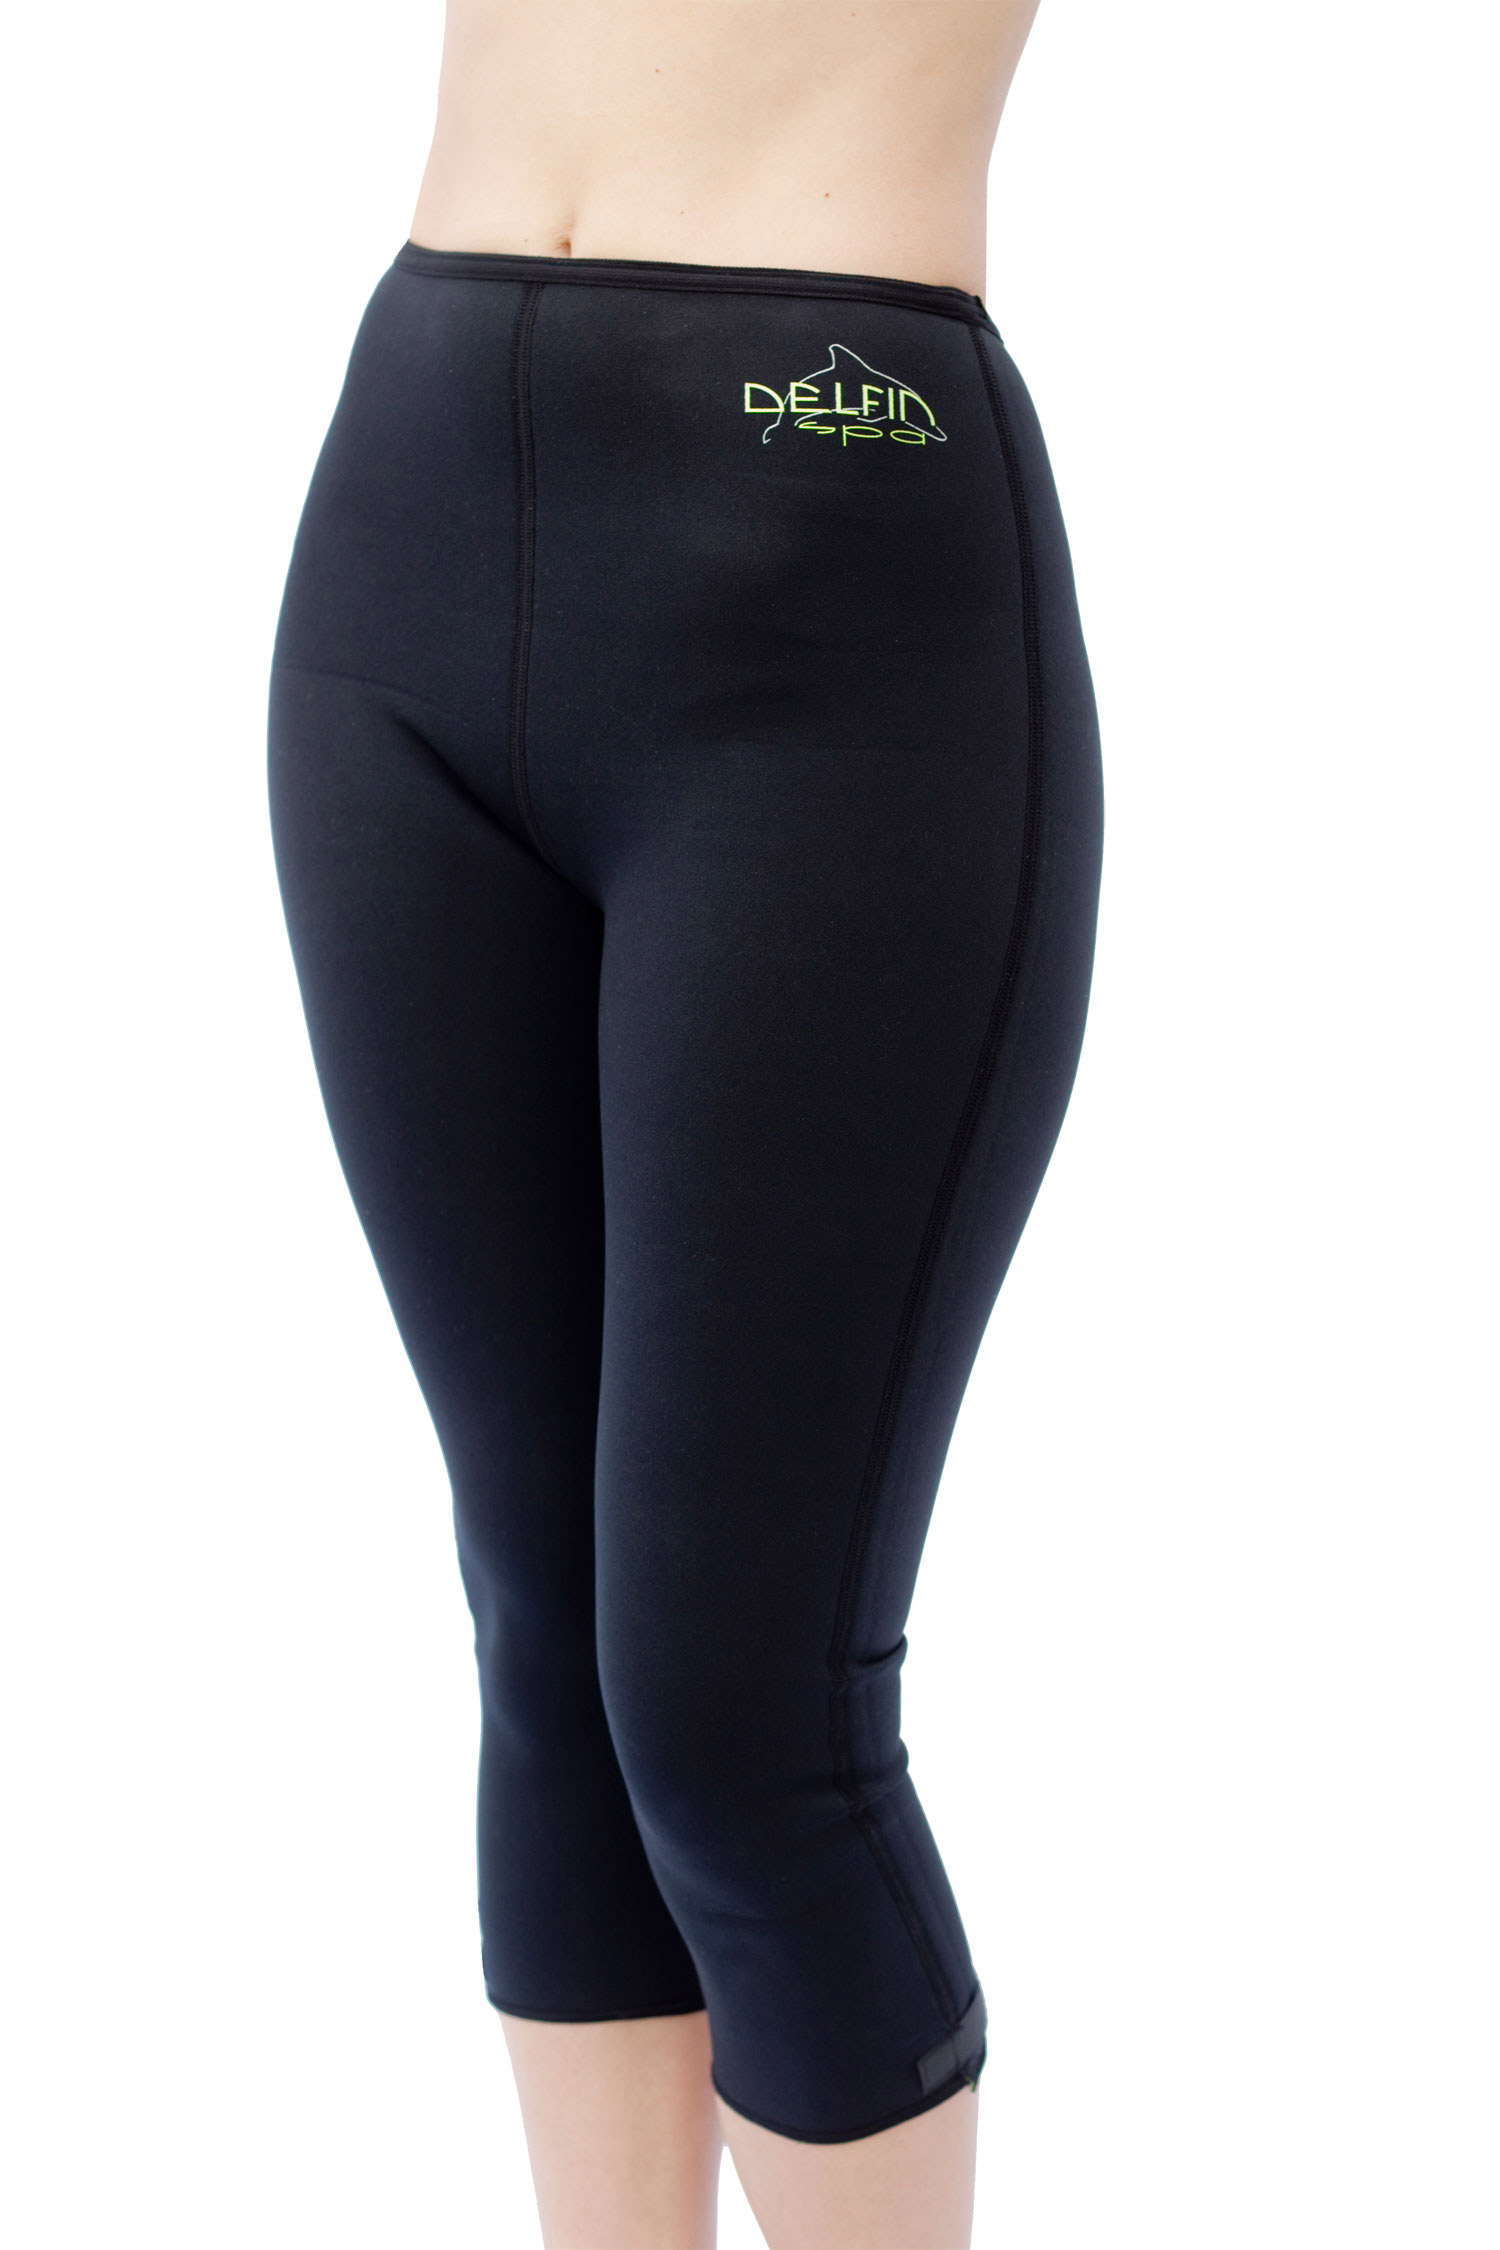 Delfin Spa Bio-Ceramic Anti Cellulite Capris